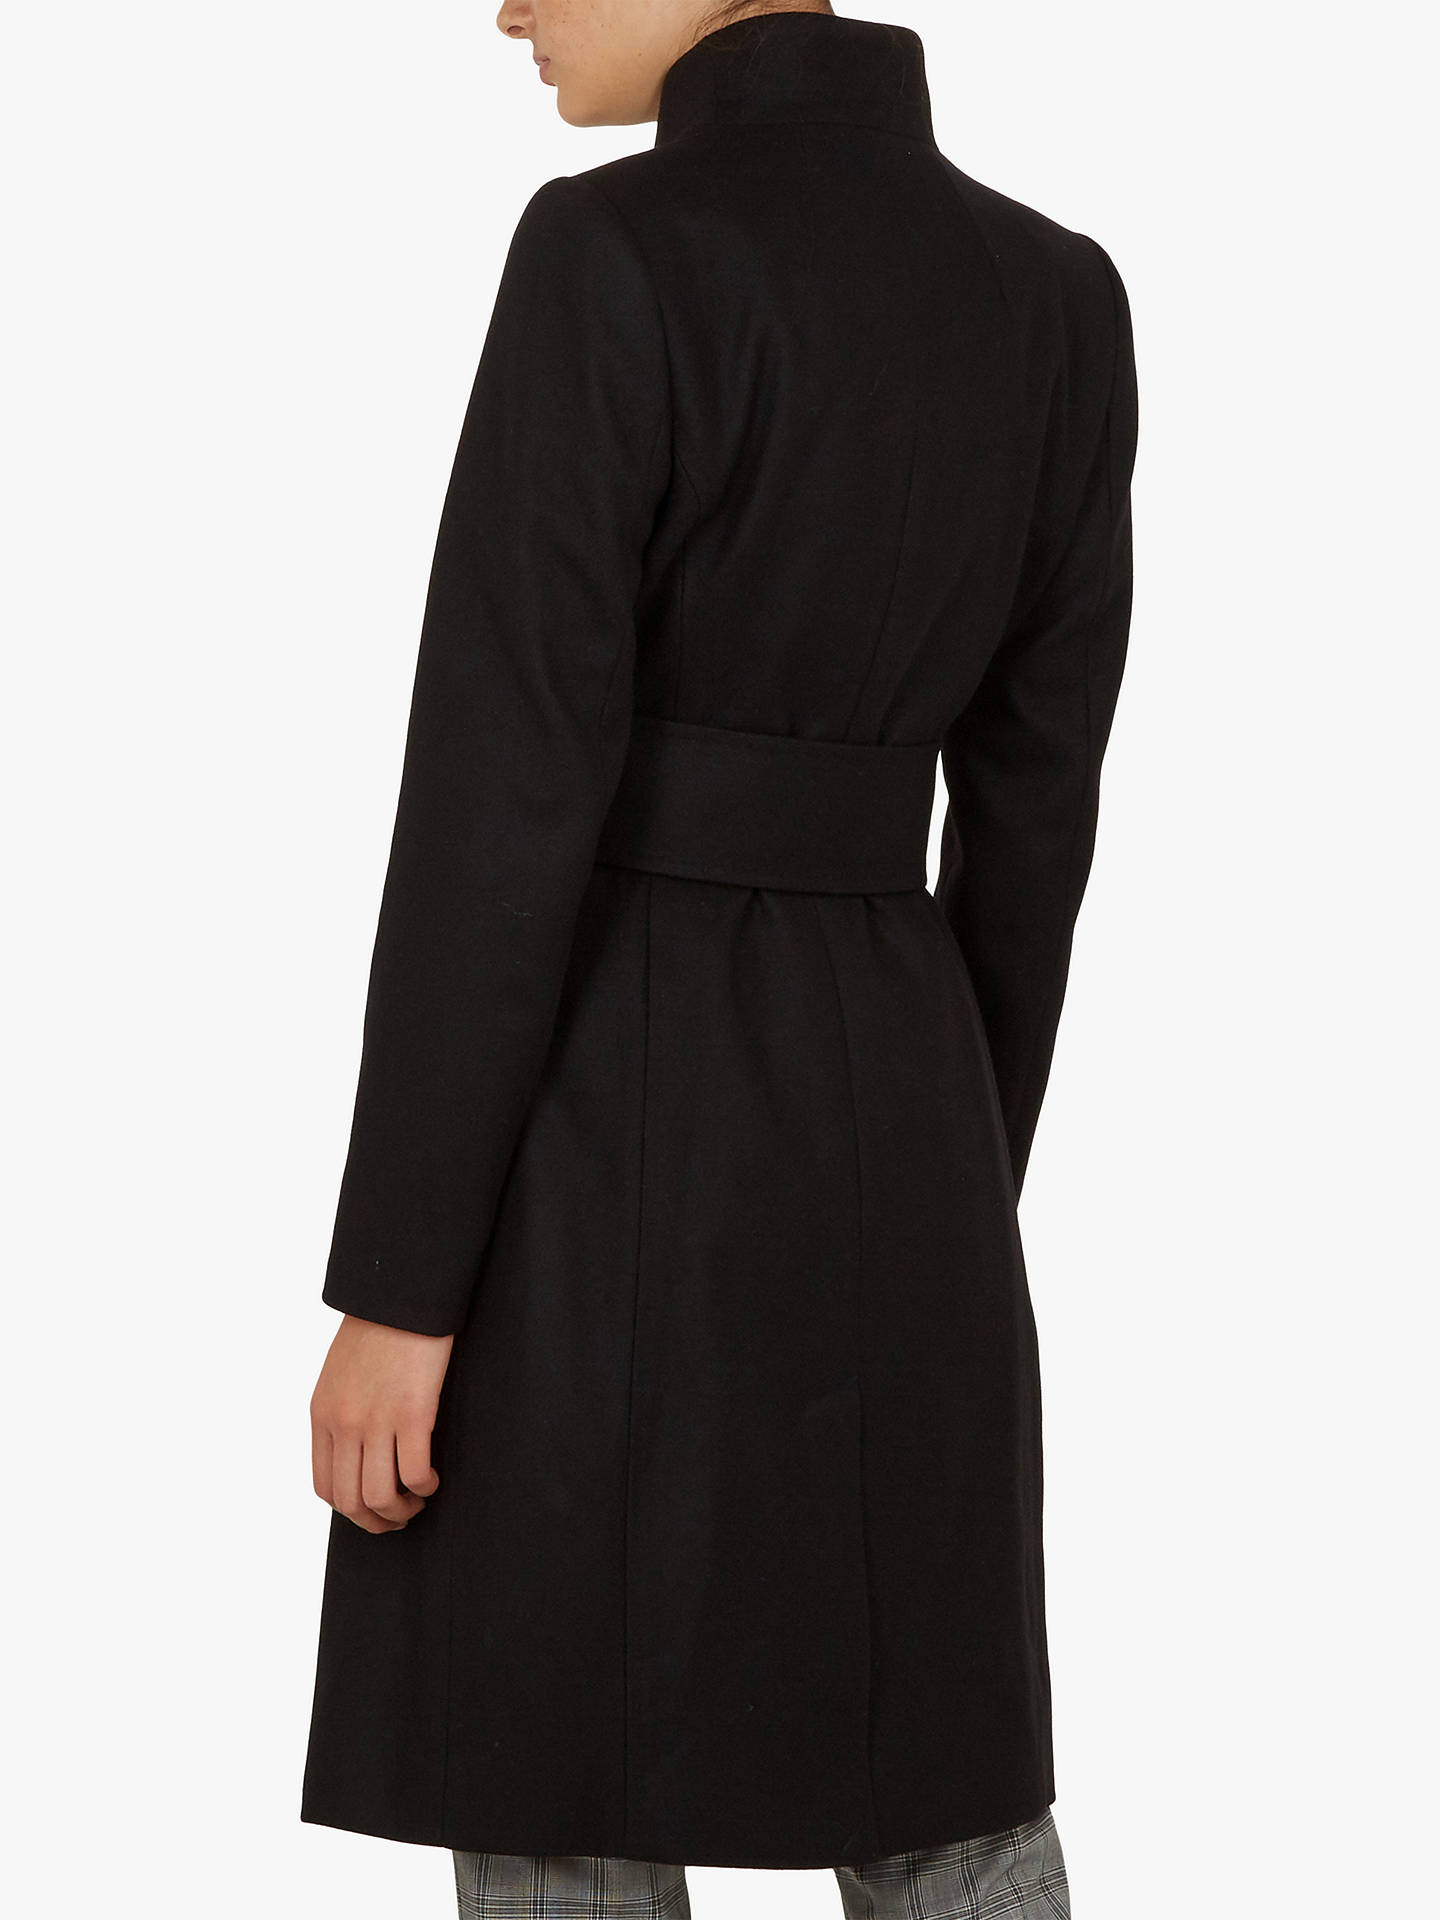 BuyTed Baker Rayay Coat, Black, XL Online at johnlewis.com